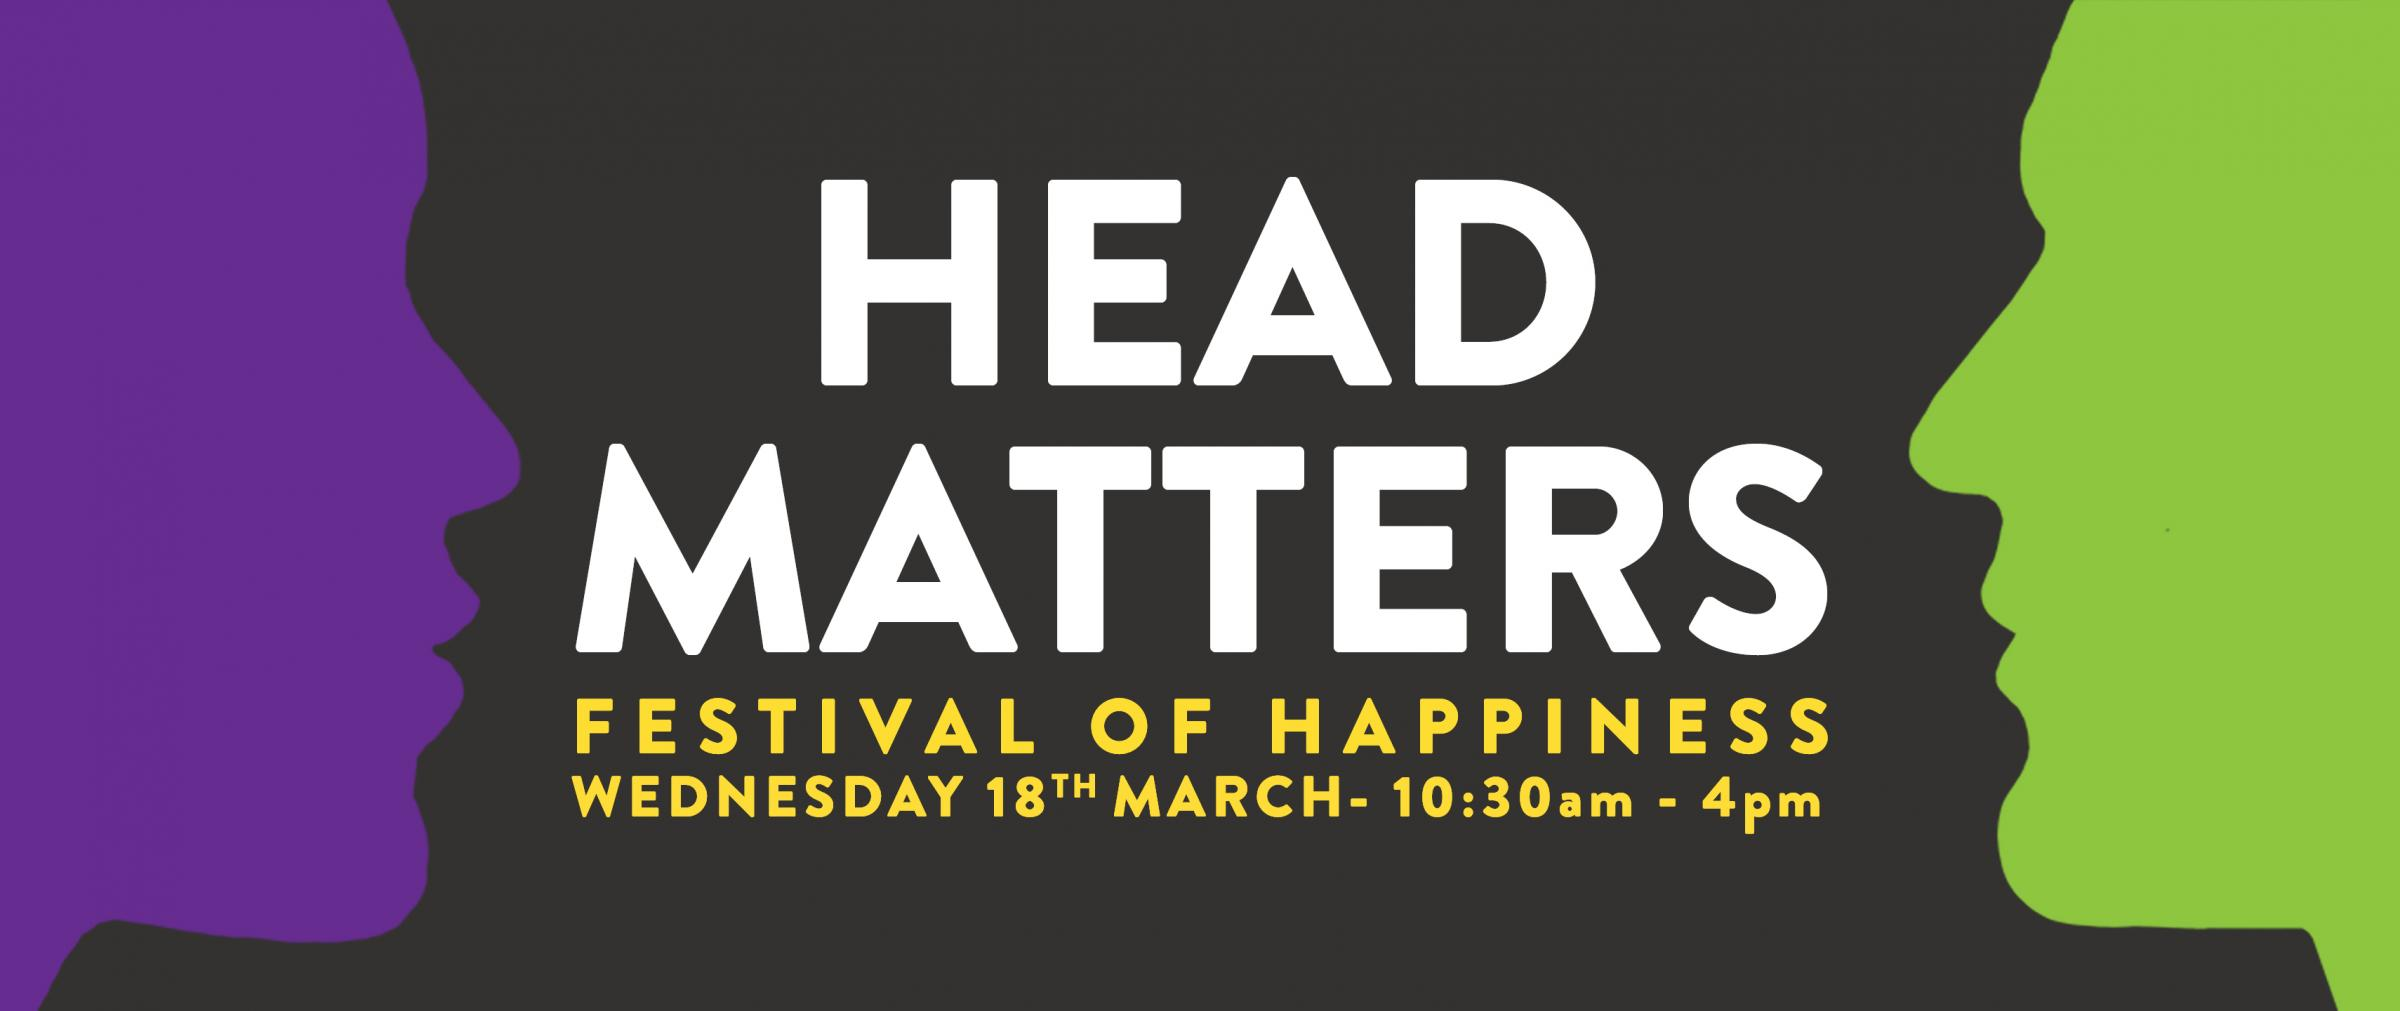 Head Matter Festival of Happiness